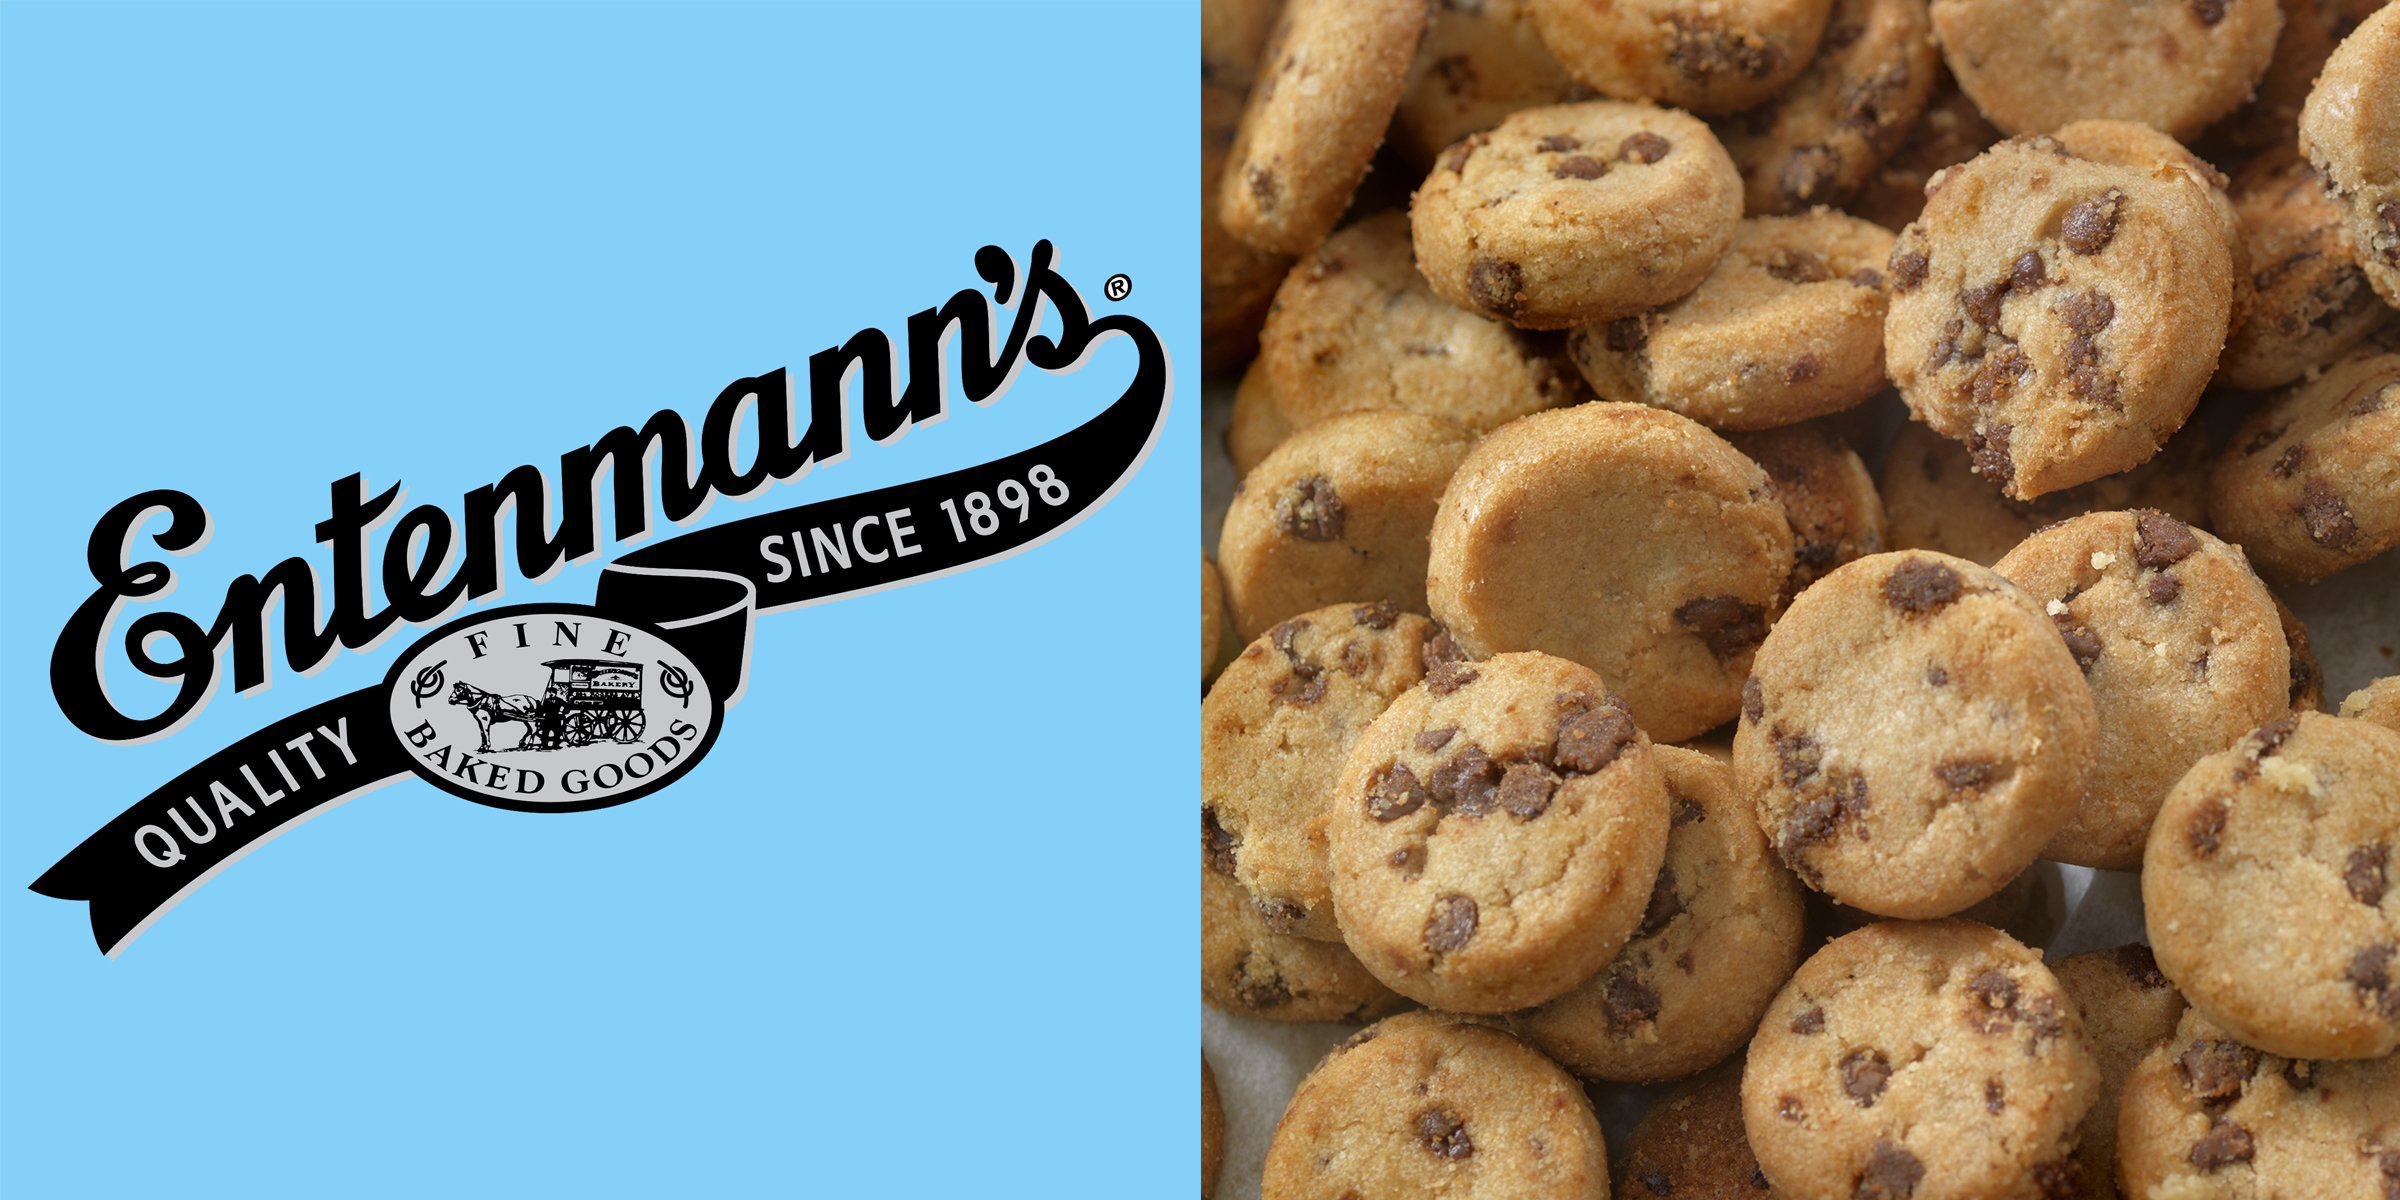 Entenmann's cookies recalled in 37 states — here's what you need to know